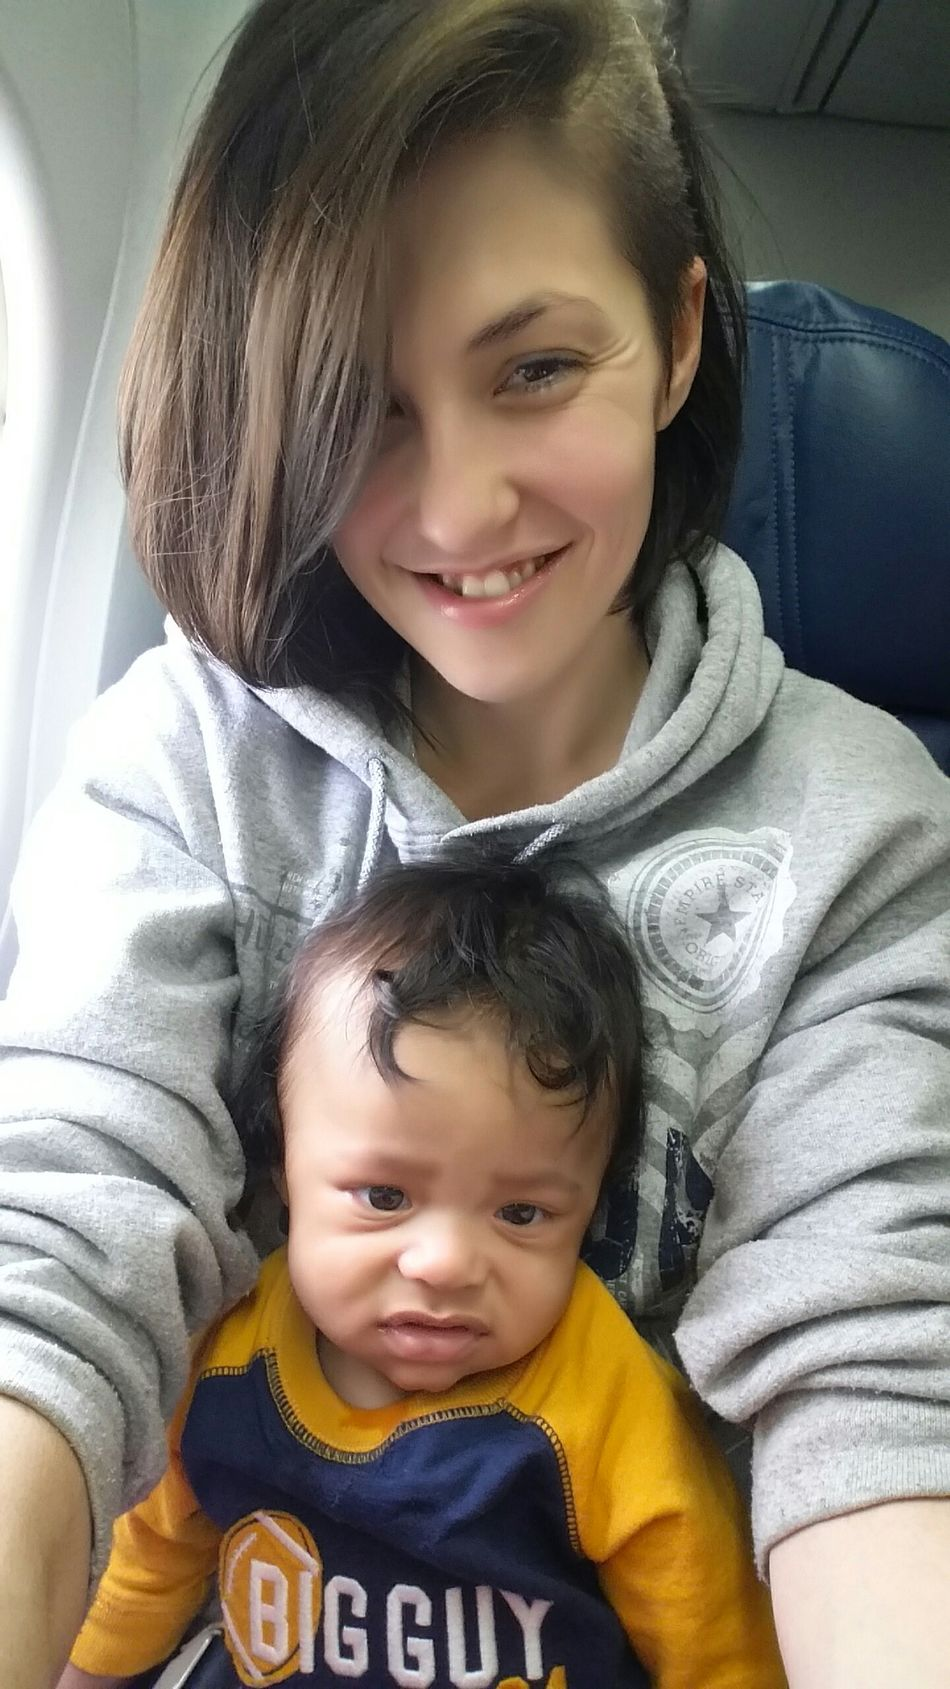 Boston's first airplane ride ny to alanta n Wisconsin New York City My Goofy Baby Funny Faces Chillin With No Makeup On A Mothers Love My Mini Me <3